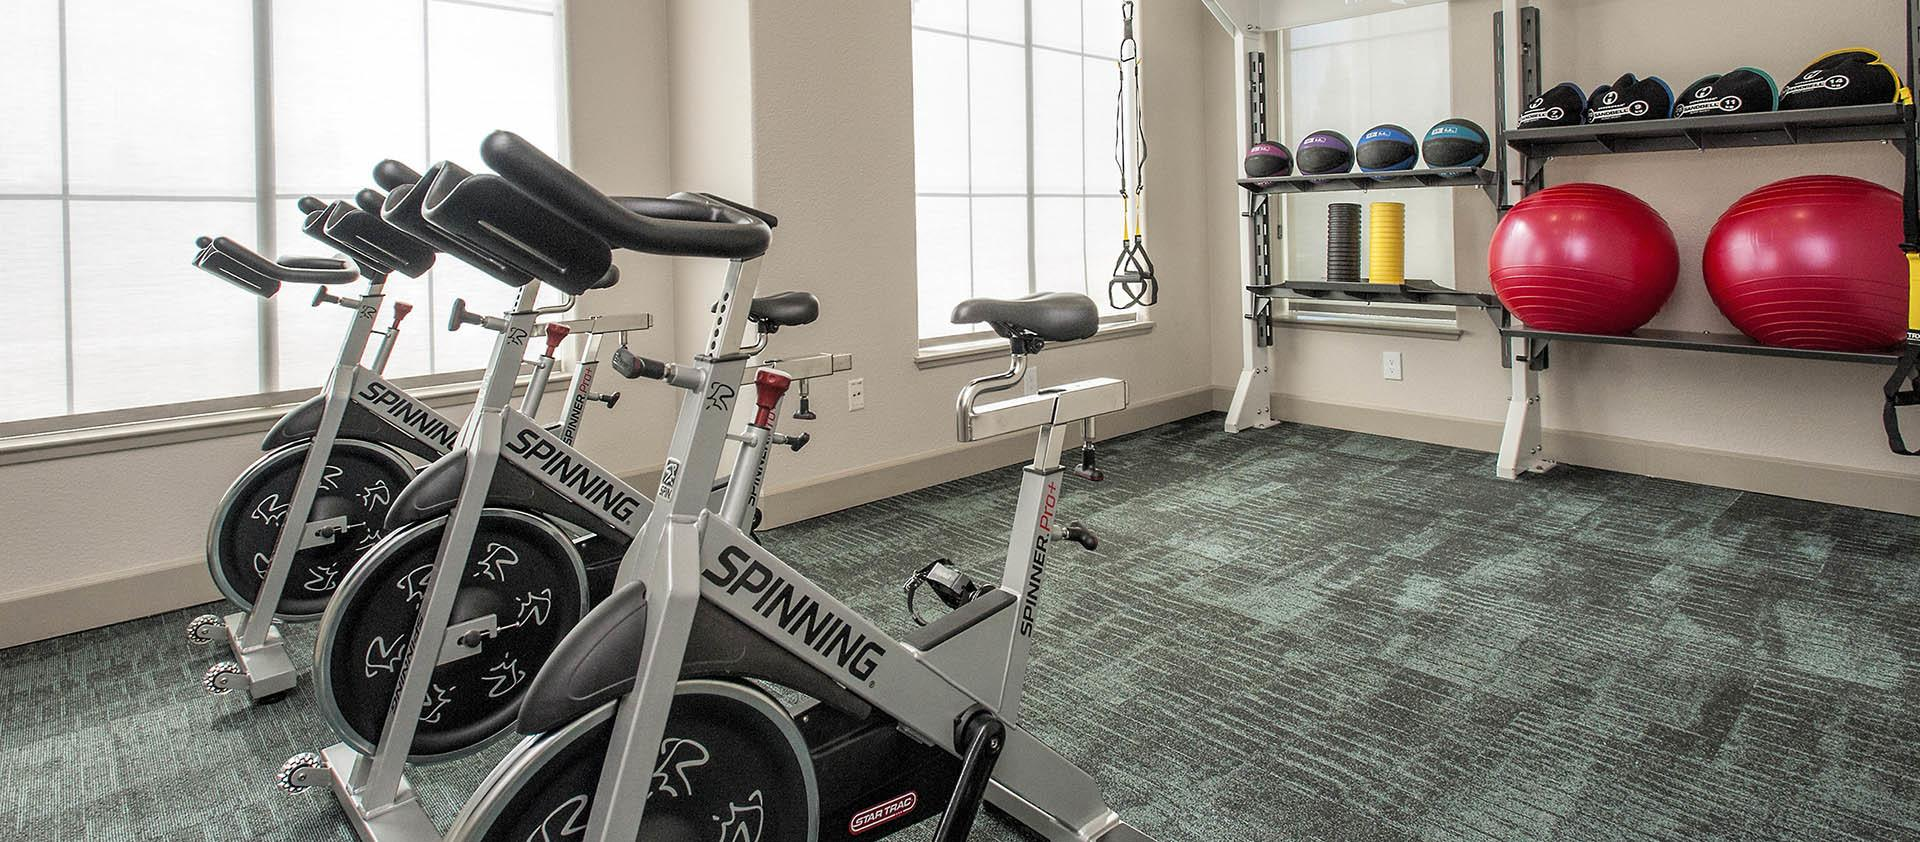 24-Hour OnDemand Yoga and Spin in our fitness center